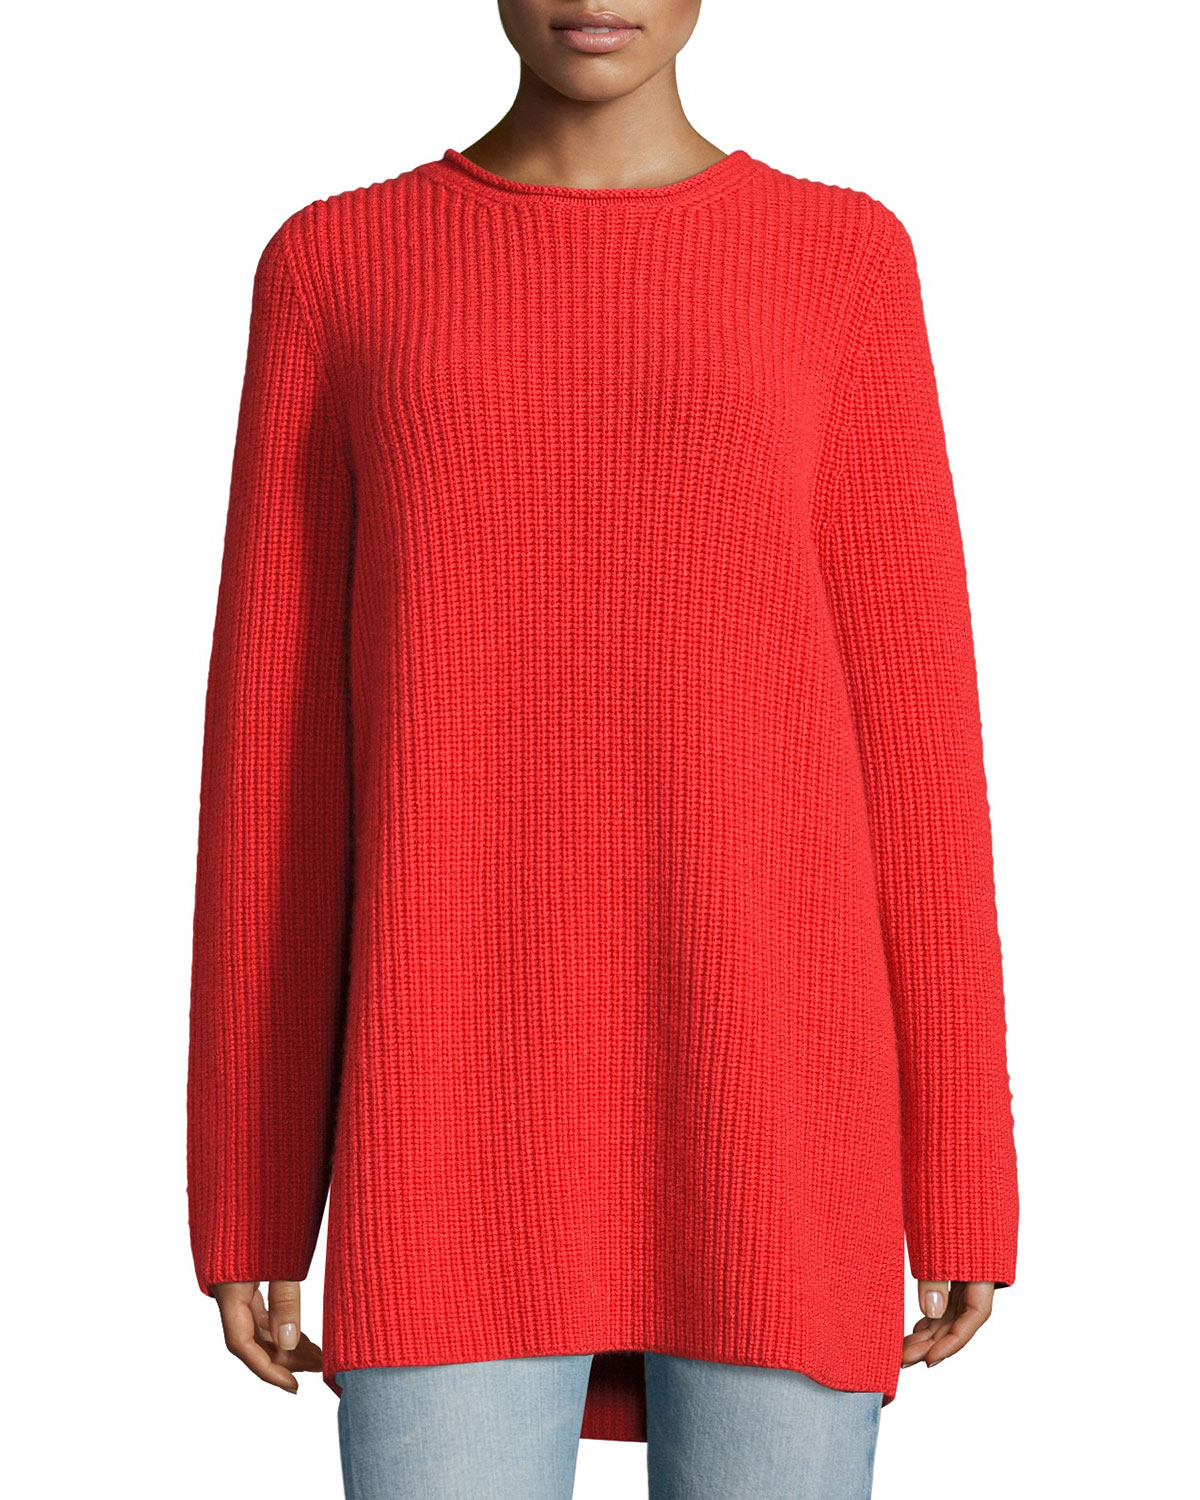 Taby Heavy Cashmere Oversized Sweater, Bright Red